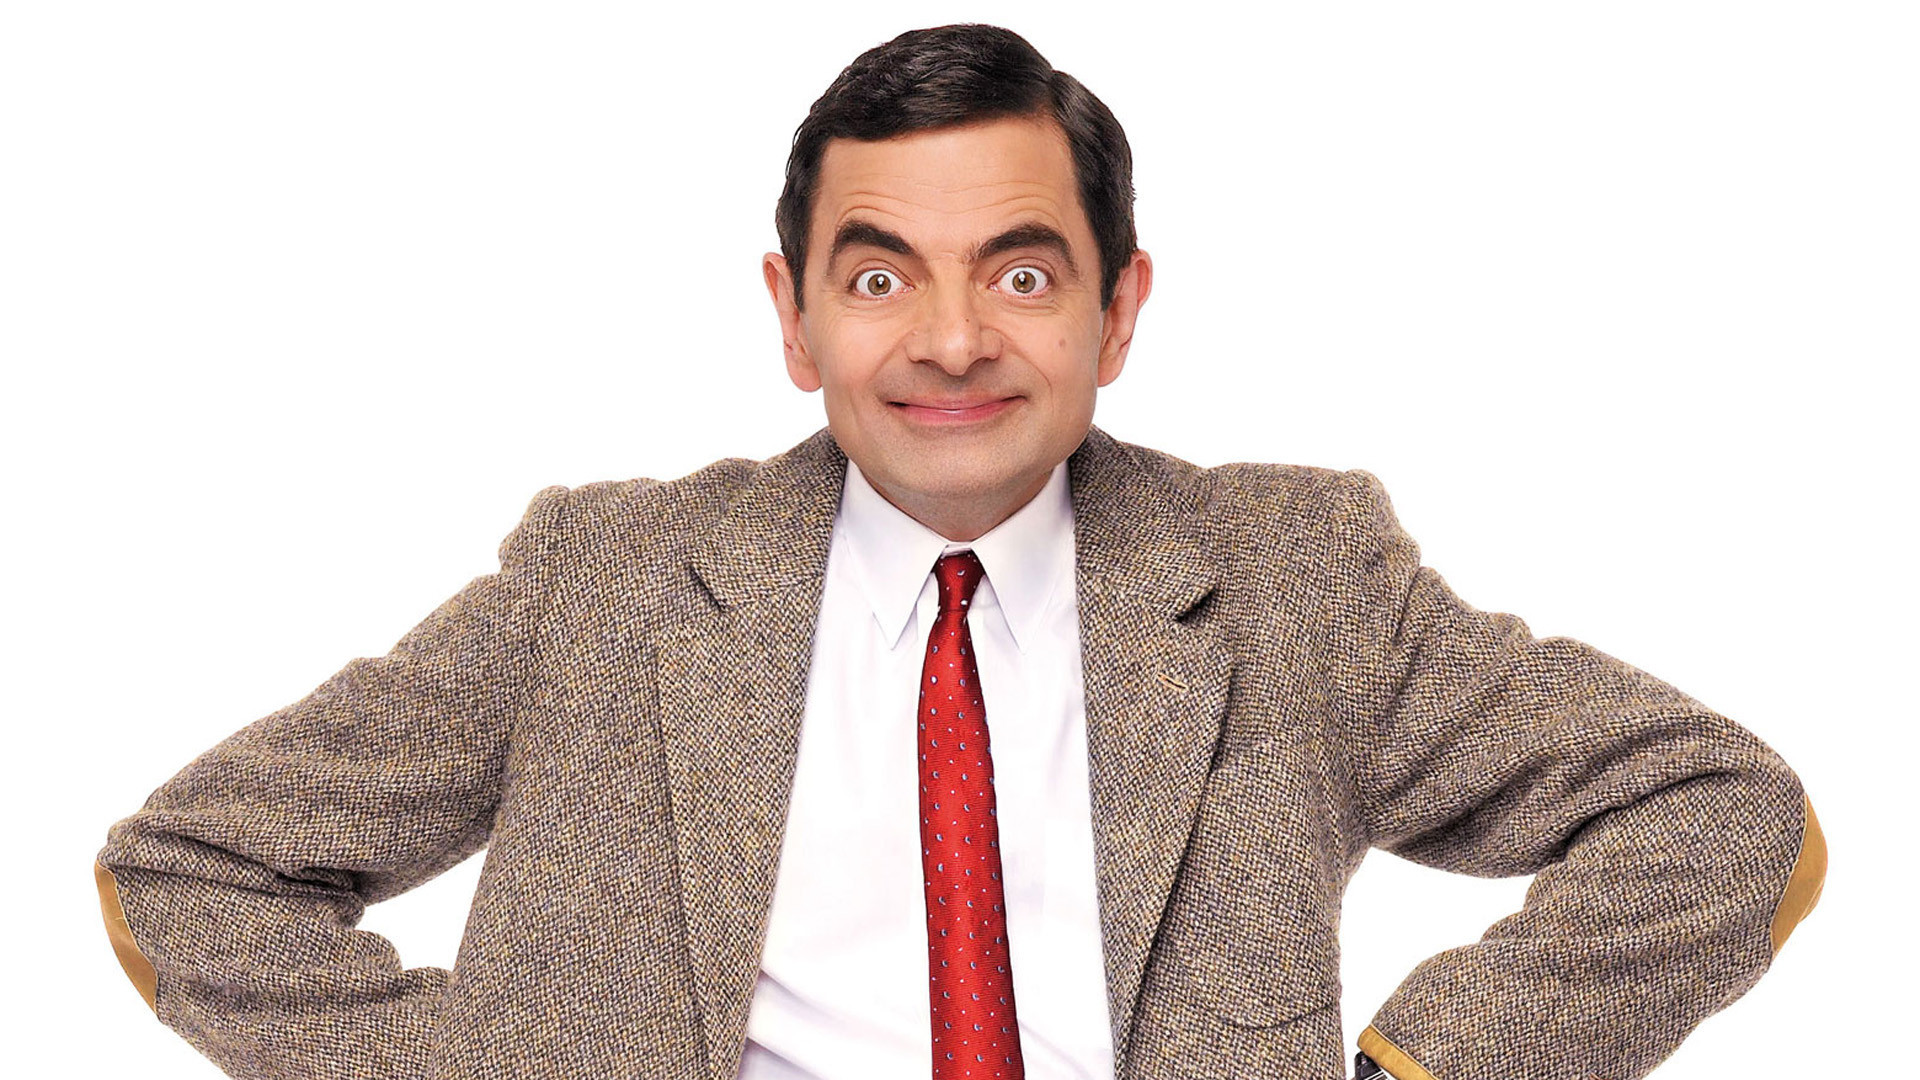 Atkinson says goodbye to beloved character mr bean1 1